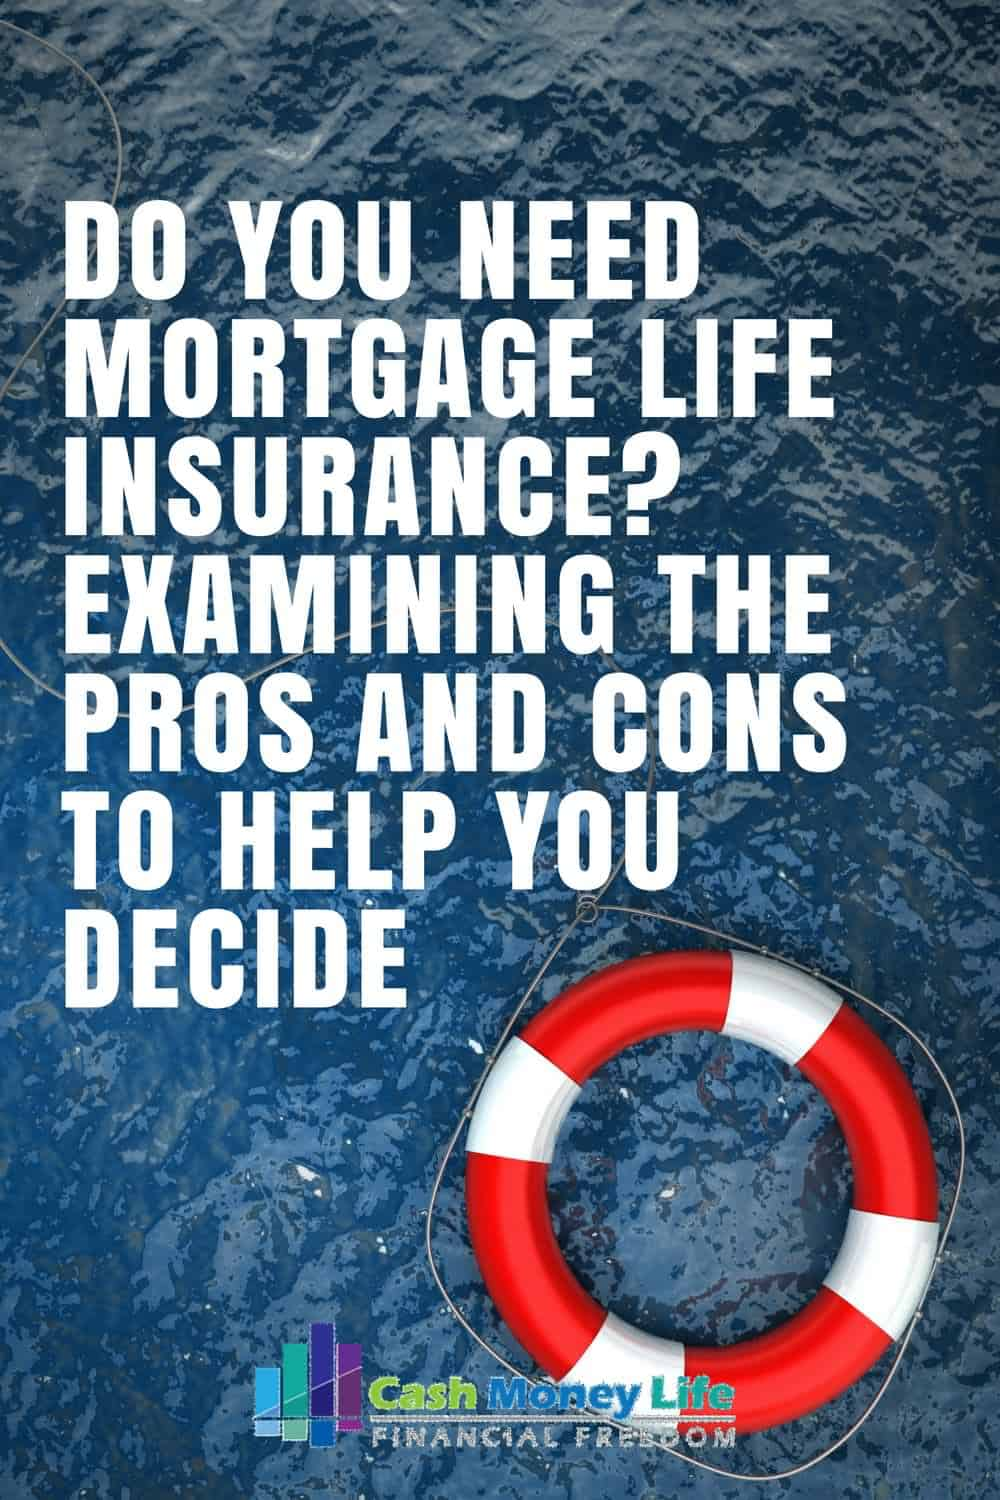 Quotes Life Insurance Pros And Cons Of Mortgage Life Insurance  Cash Money Life